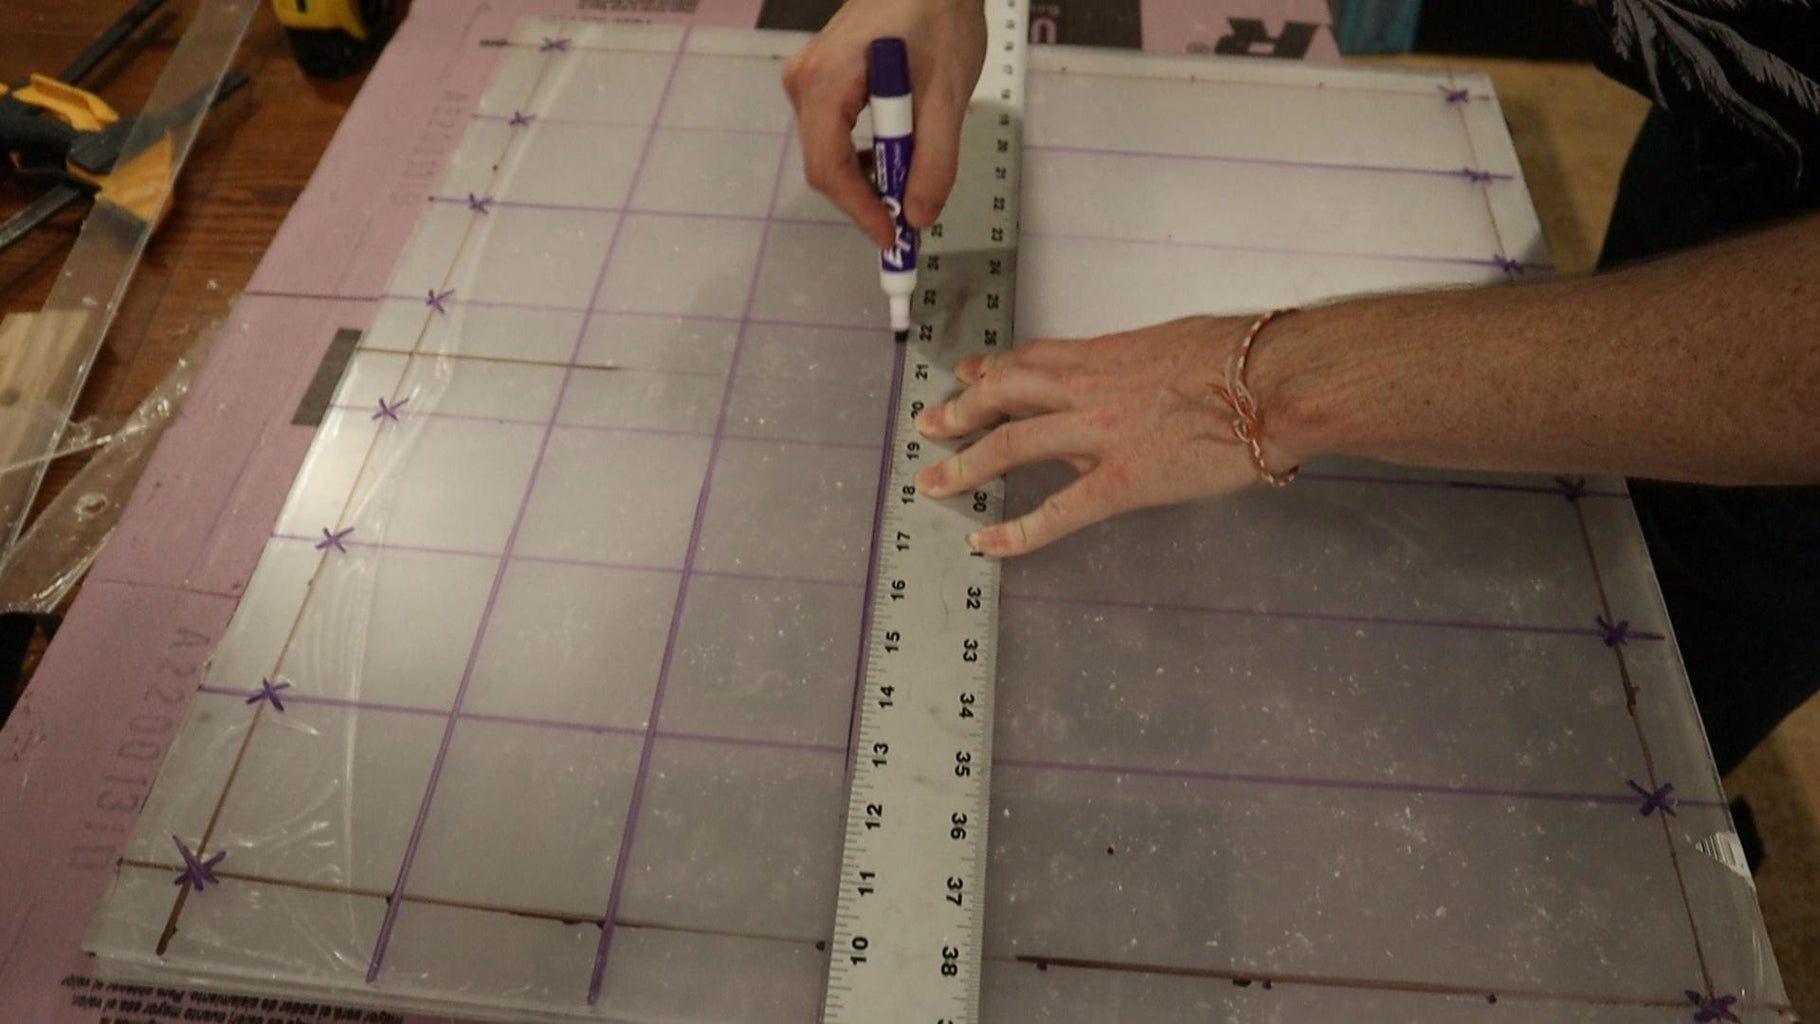 Measure Out the Holes for the LEDs